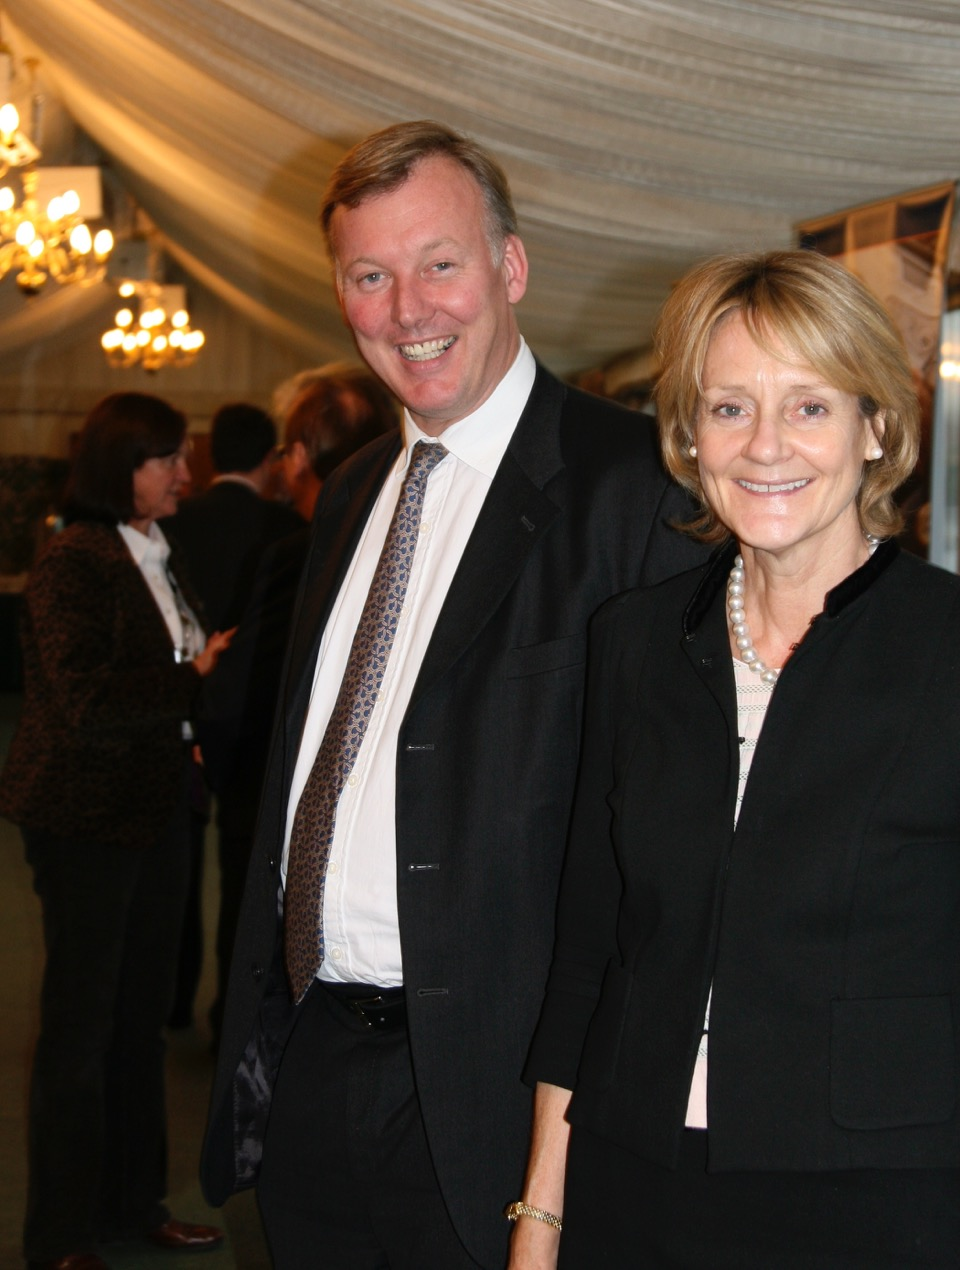 Bill Wiggins MP and Baroness Buscombe, both good shots